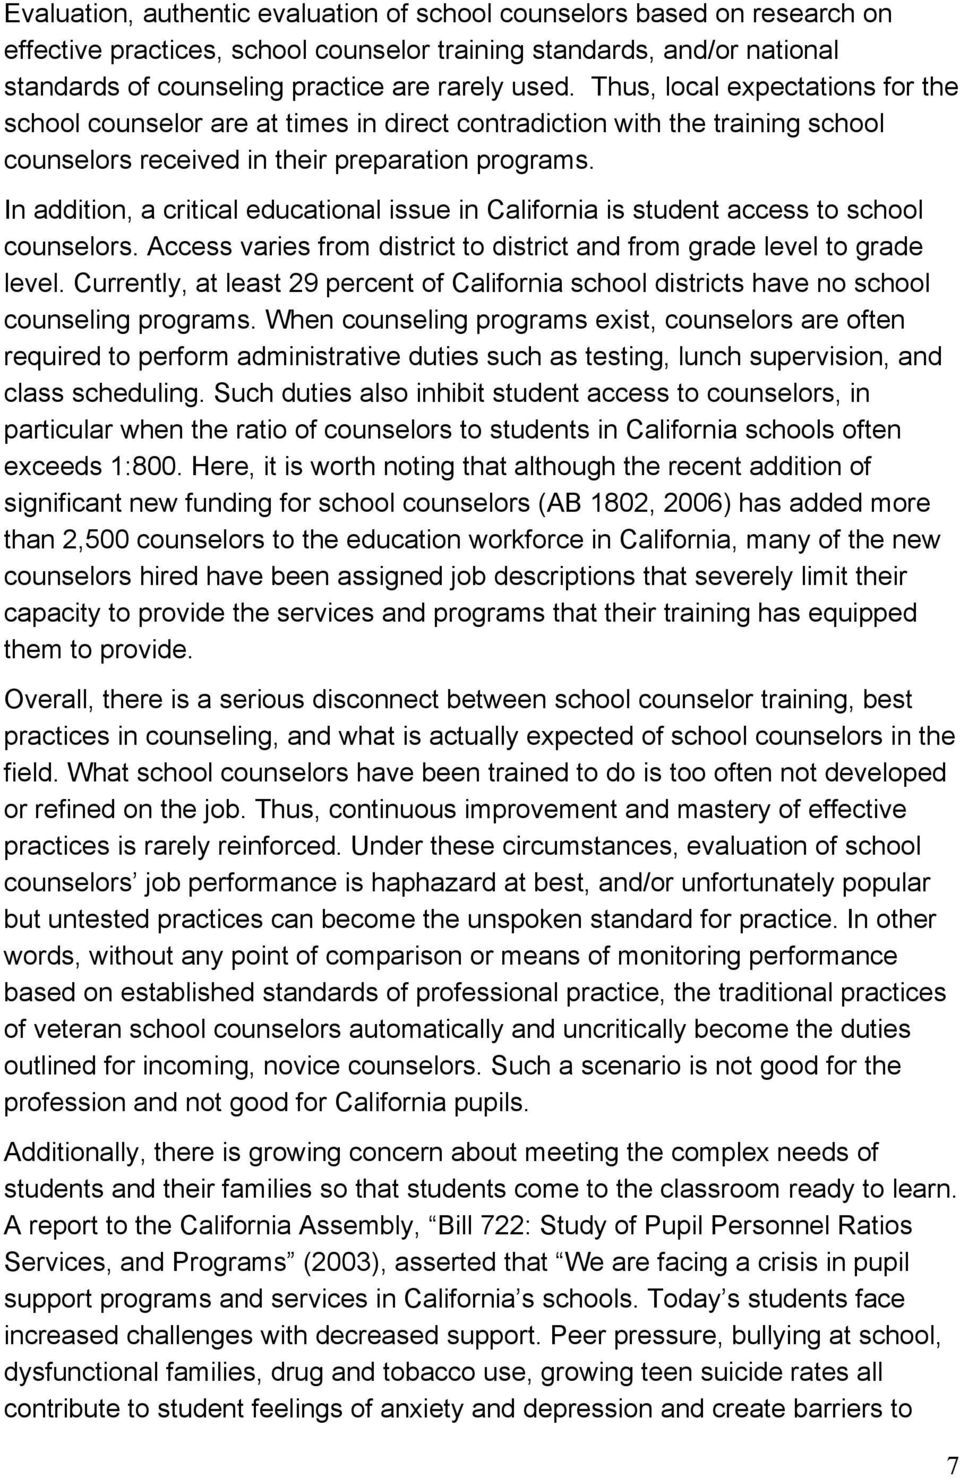 In addition, a critical educational issue in California is student access to school counselors. Access varies from district to district and from grade level to grade level.